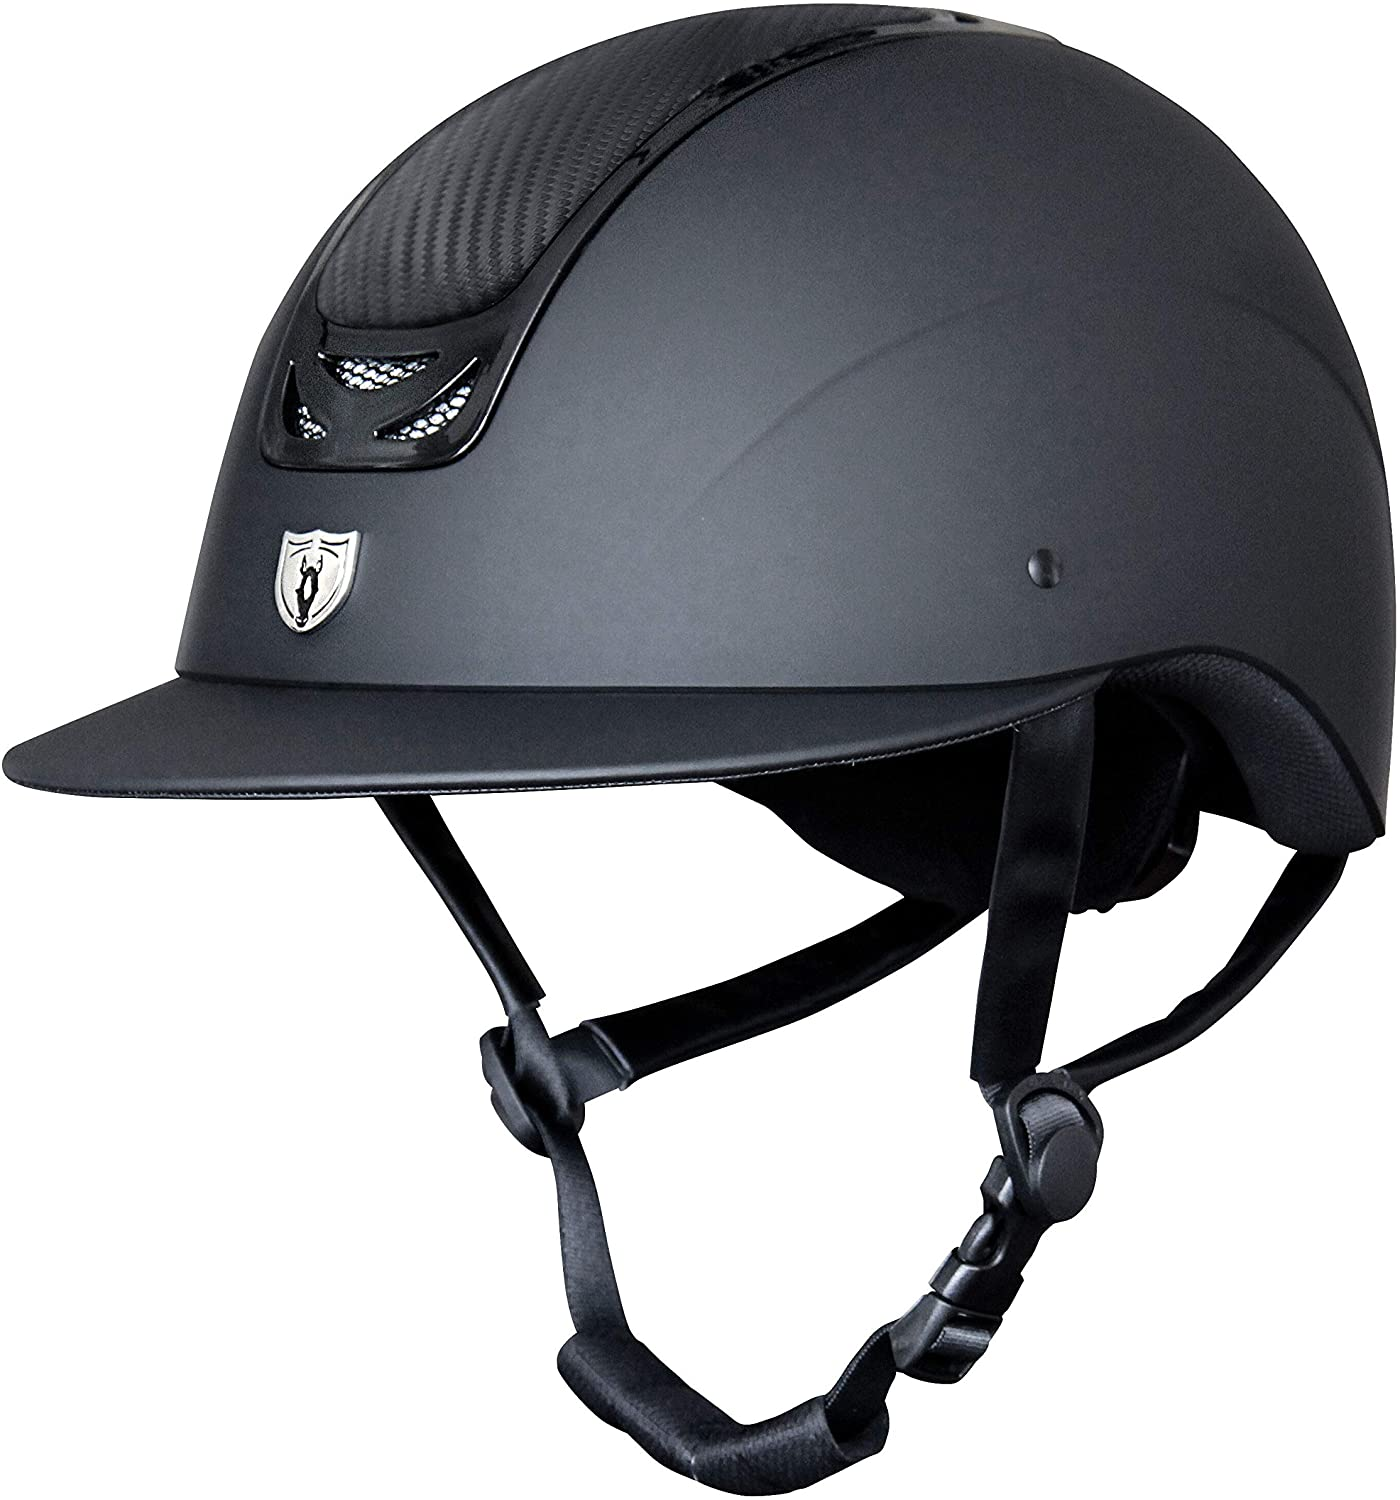 Tipperary Royal English Riding Equestrian Horse Helmet Matte Black Wide Brim Carbon Leather Top Style #9503W